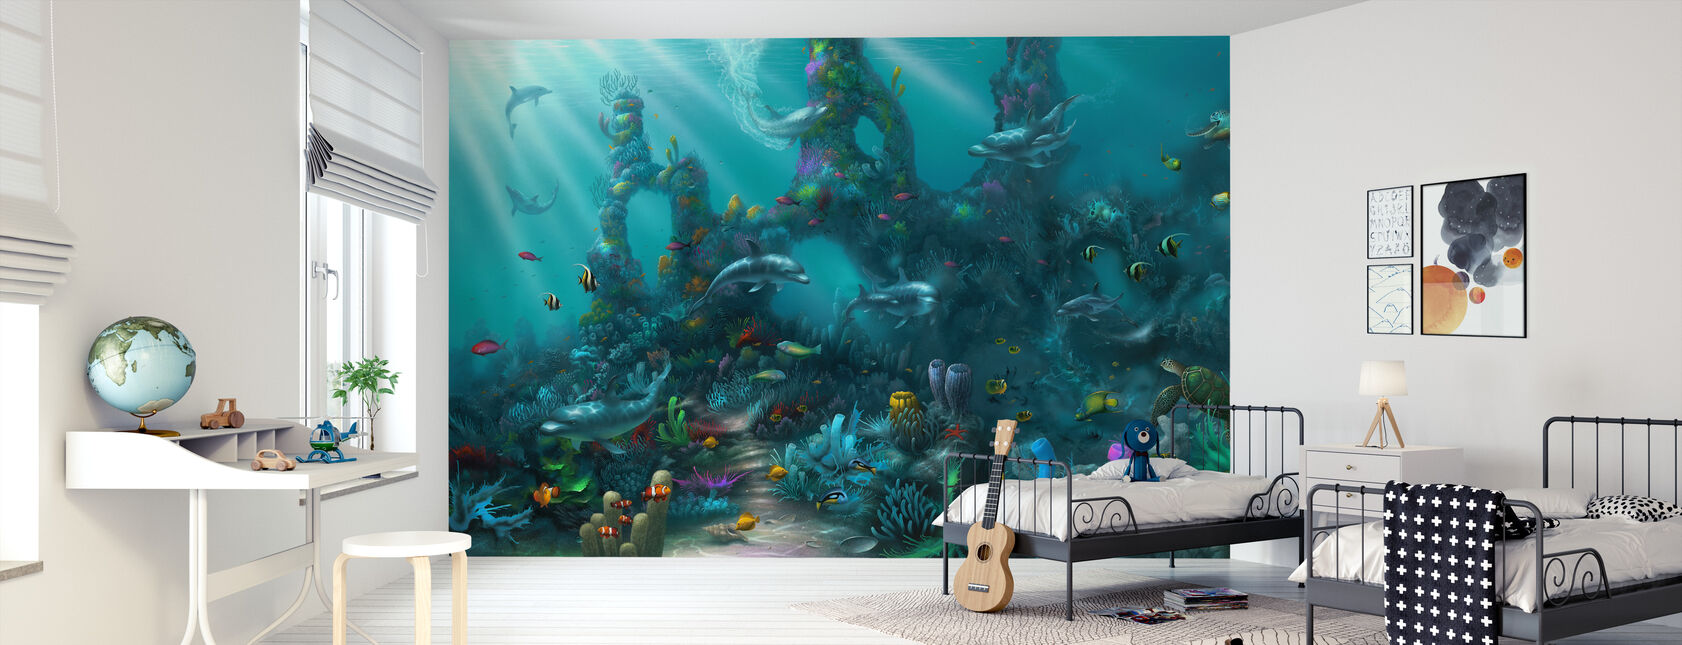 Dolphin Paradise - Wallpaper - Kids Room